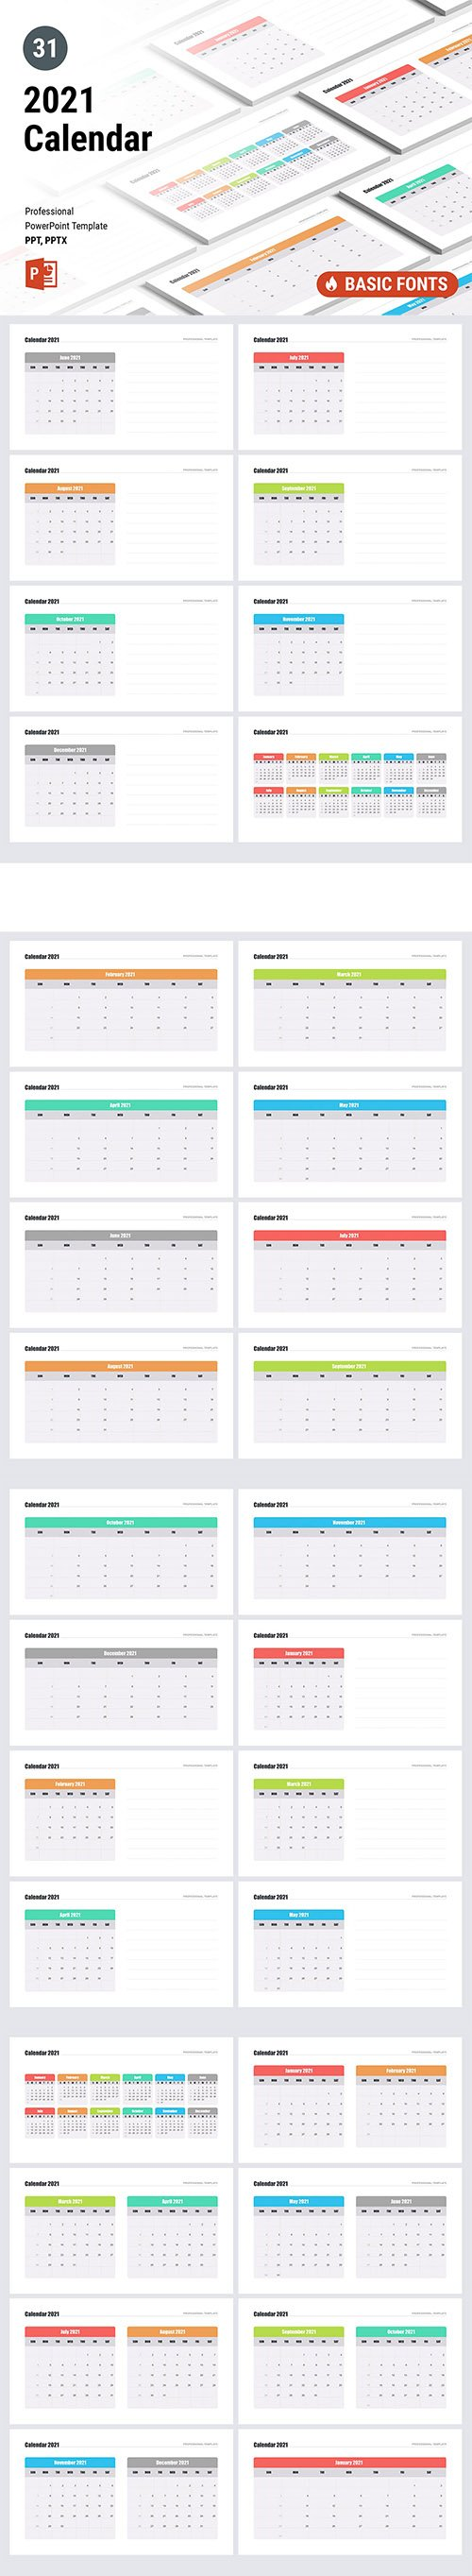 Calendar 2021 for PowerPoint and Keynote